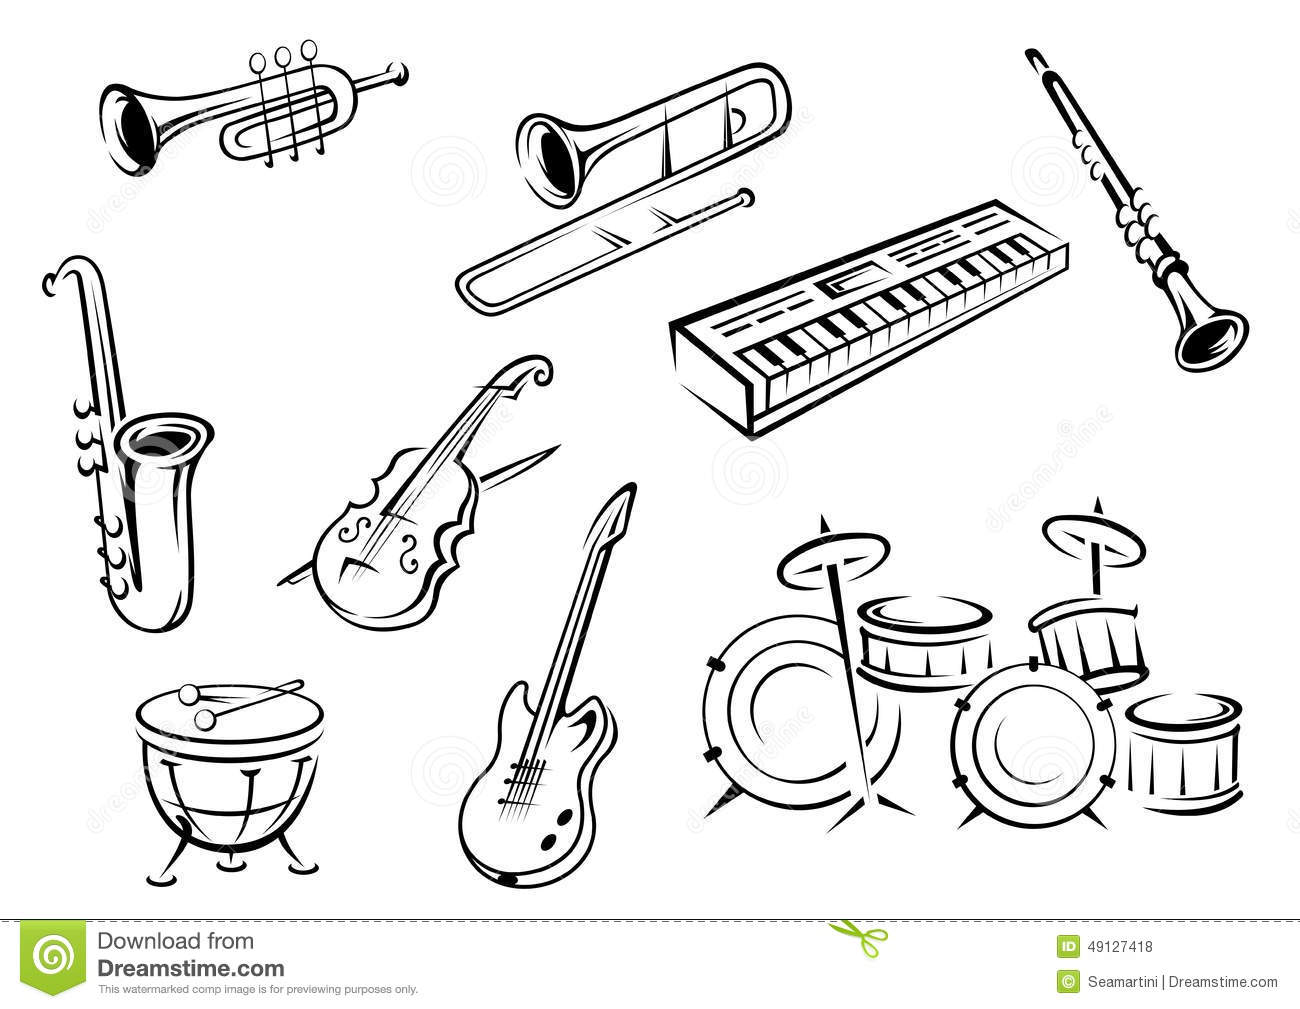 Ainsa Encuentro De Escuelas De Musica likewise Lyre Musical Instrument Clip Art 44506 also Clipart Grand Piano besides Saxophone Drawing also Guitar. on vintage musical instrument illustration